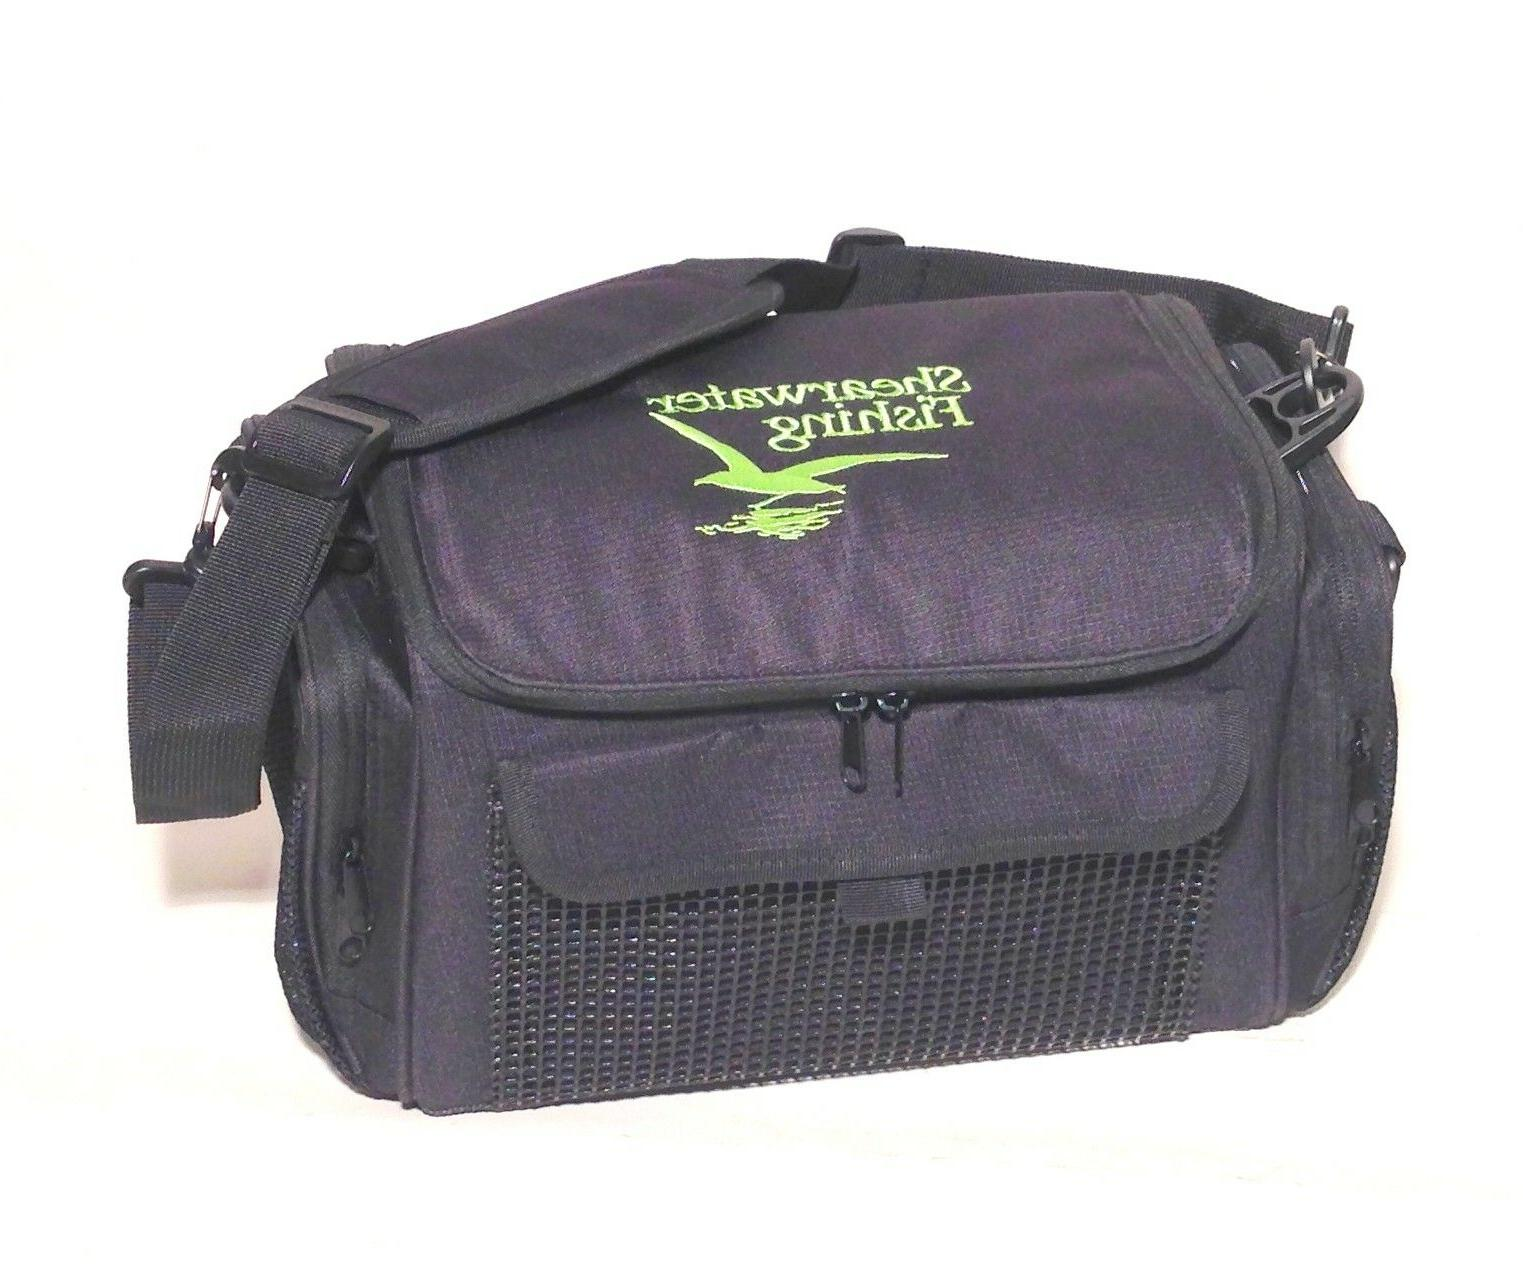 Shearwater Soft Sided Bag Small